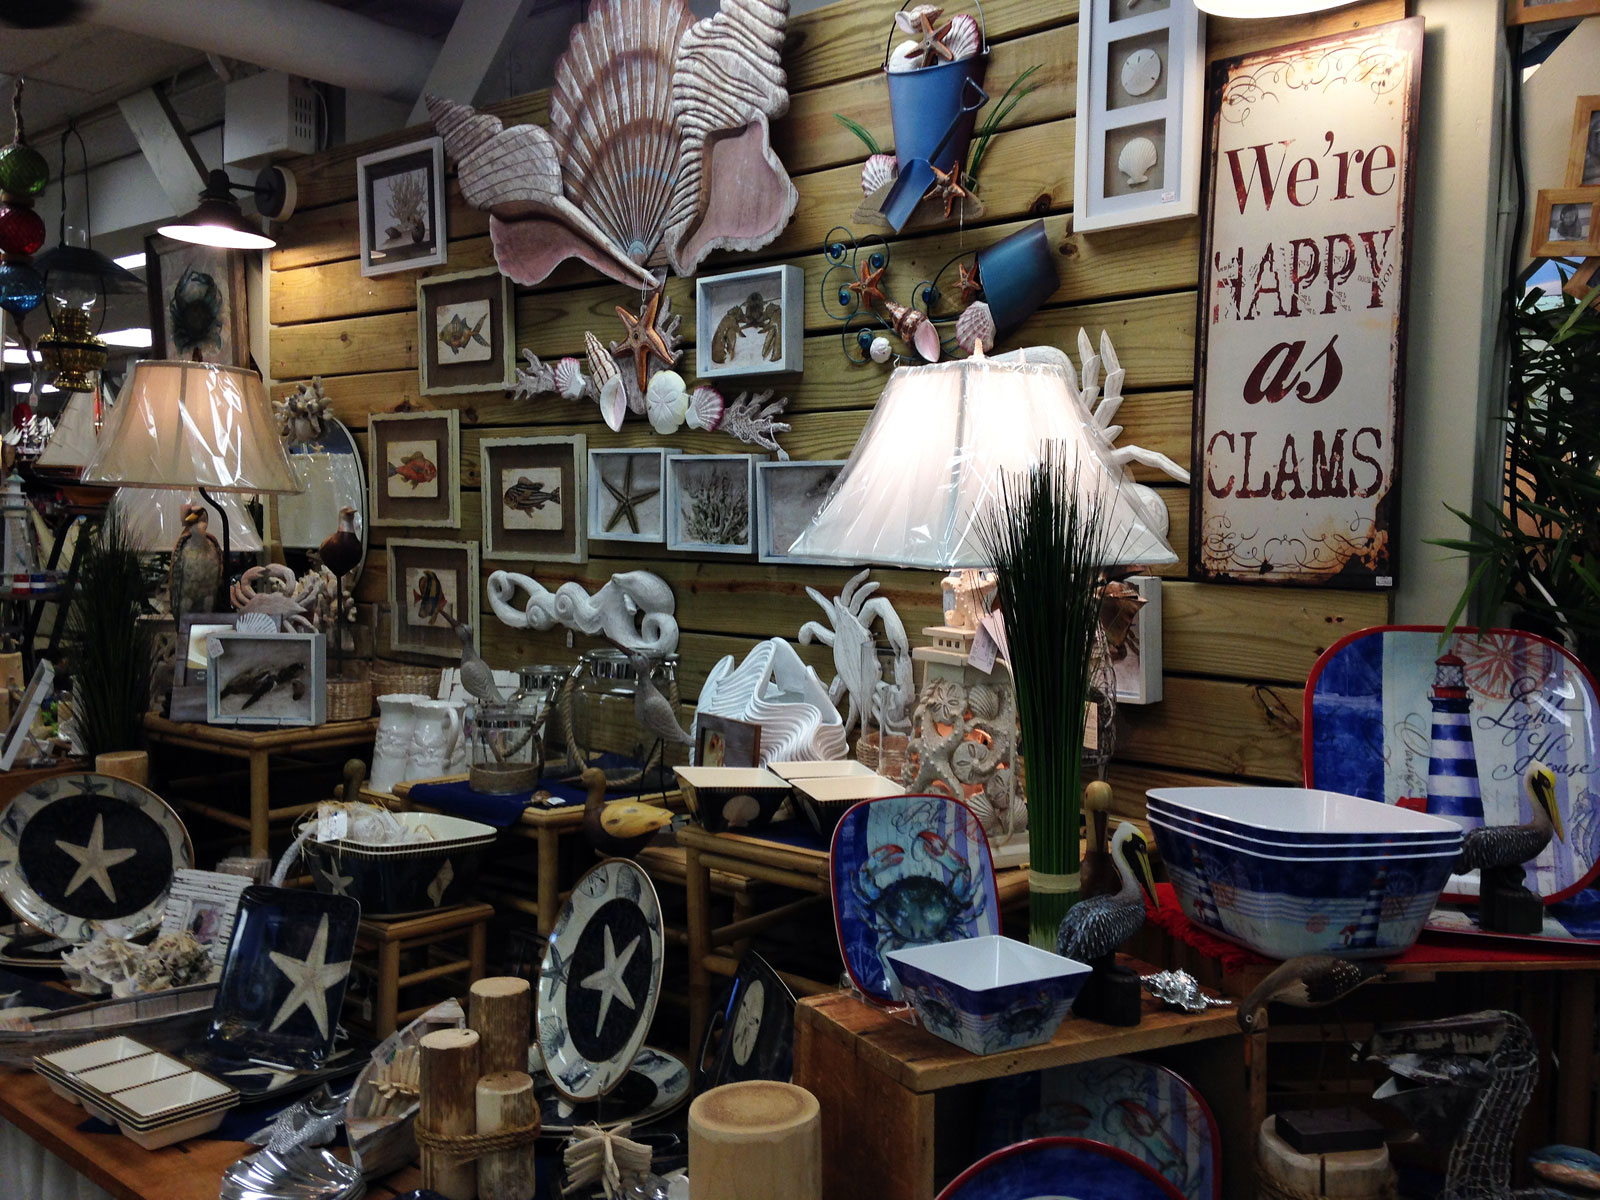 Seaside Country Store: The most unusual store on the shore